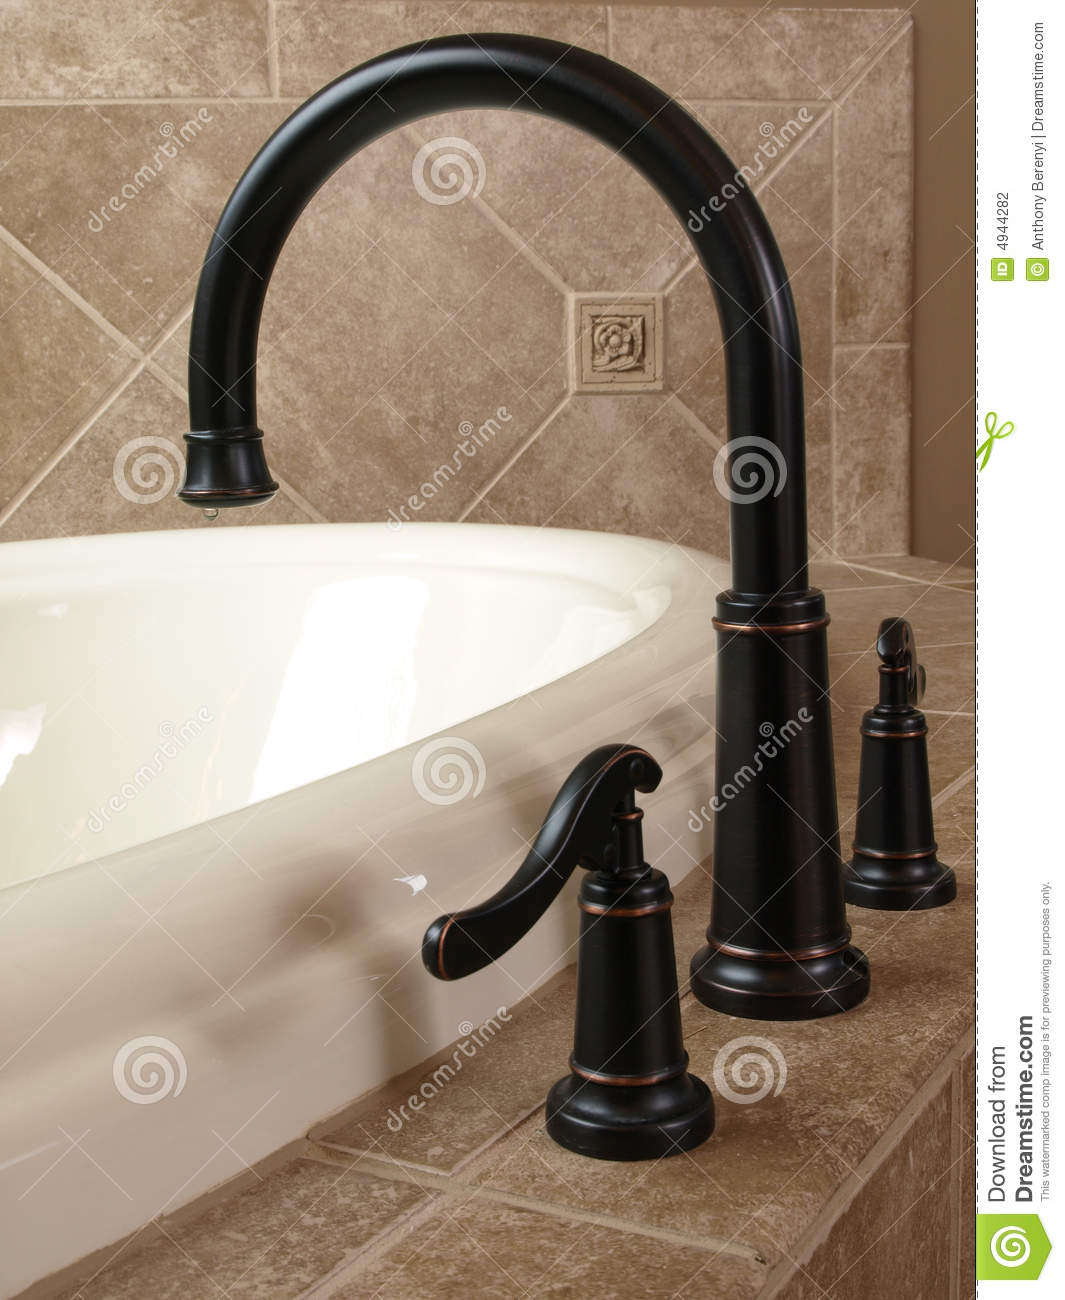 Luxury Curved Jacuzzi Faucet Stock Photo Image Of Room Regal 4944282